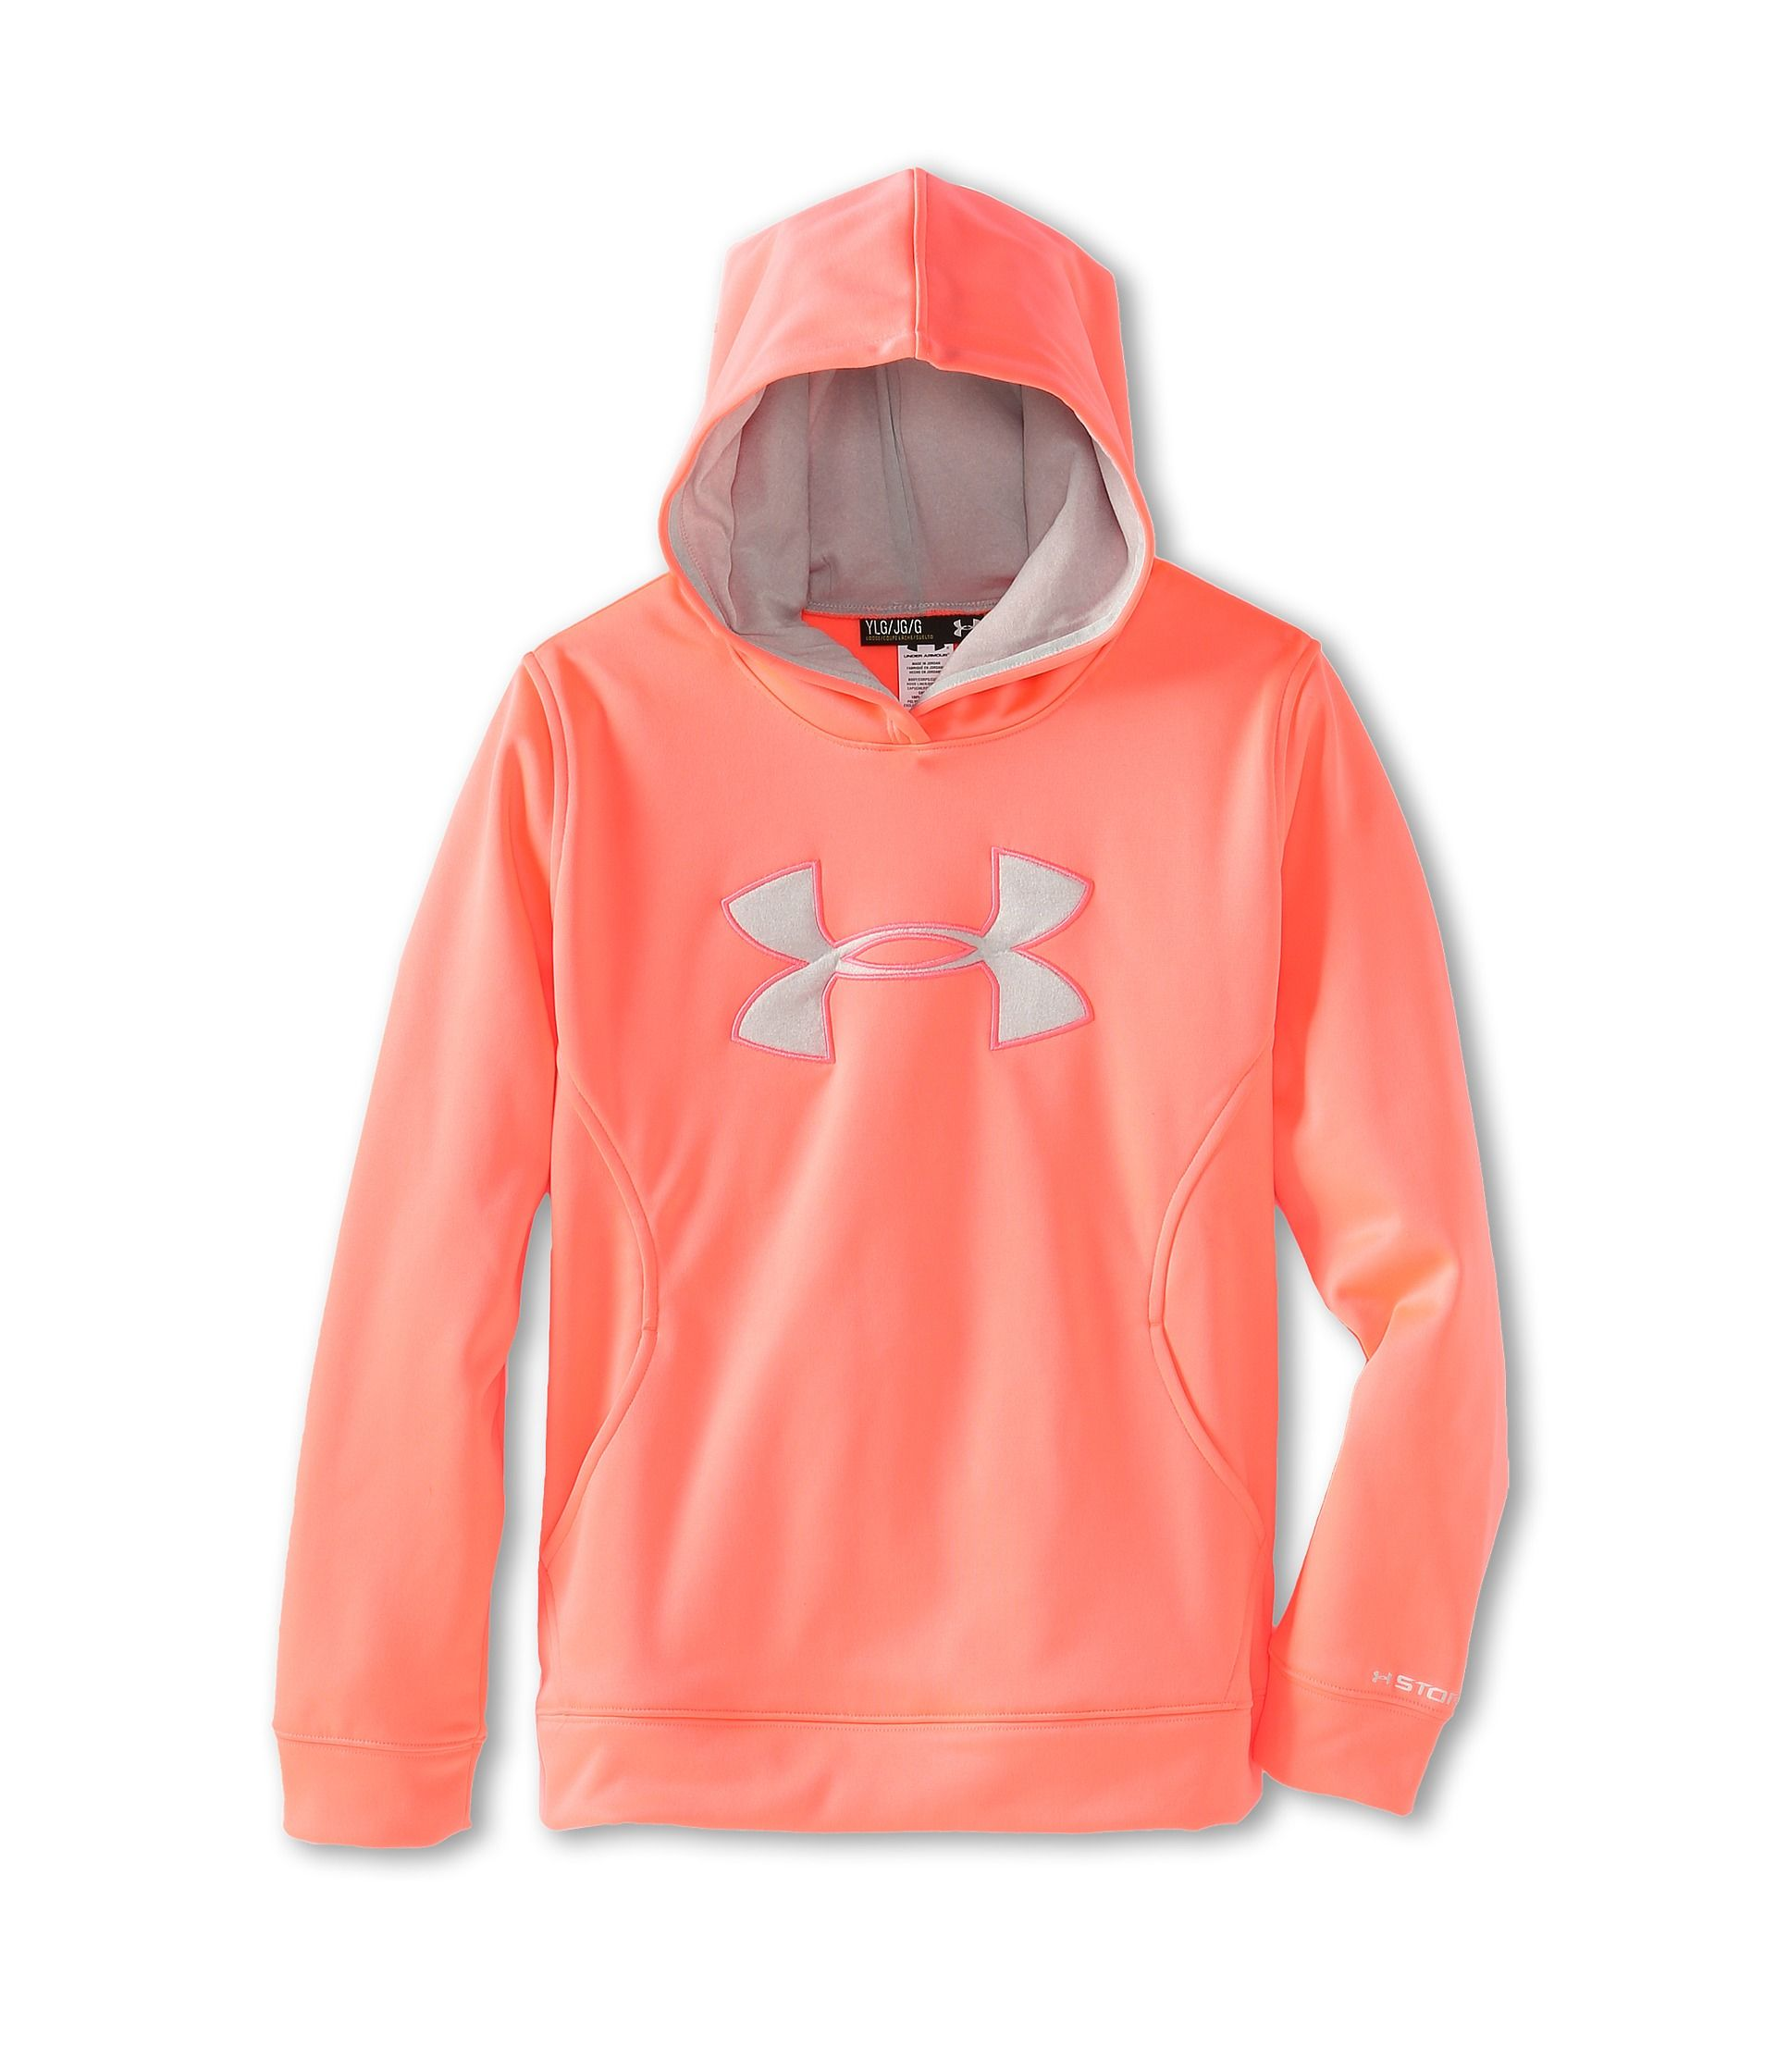 under armour sweatshirts for girls orange wwwpixshark